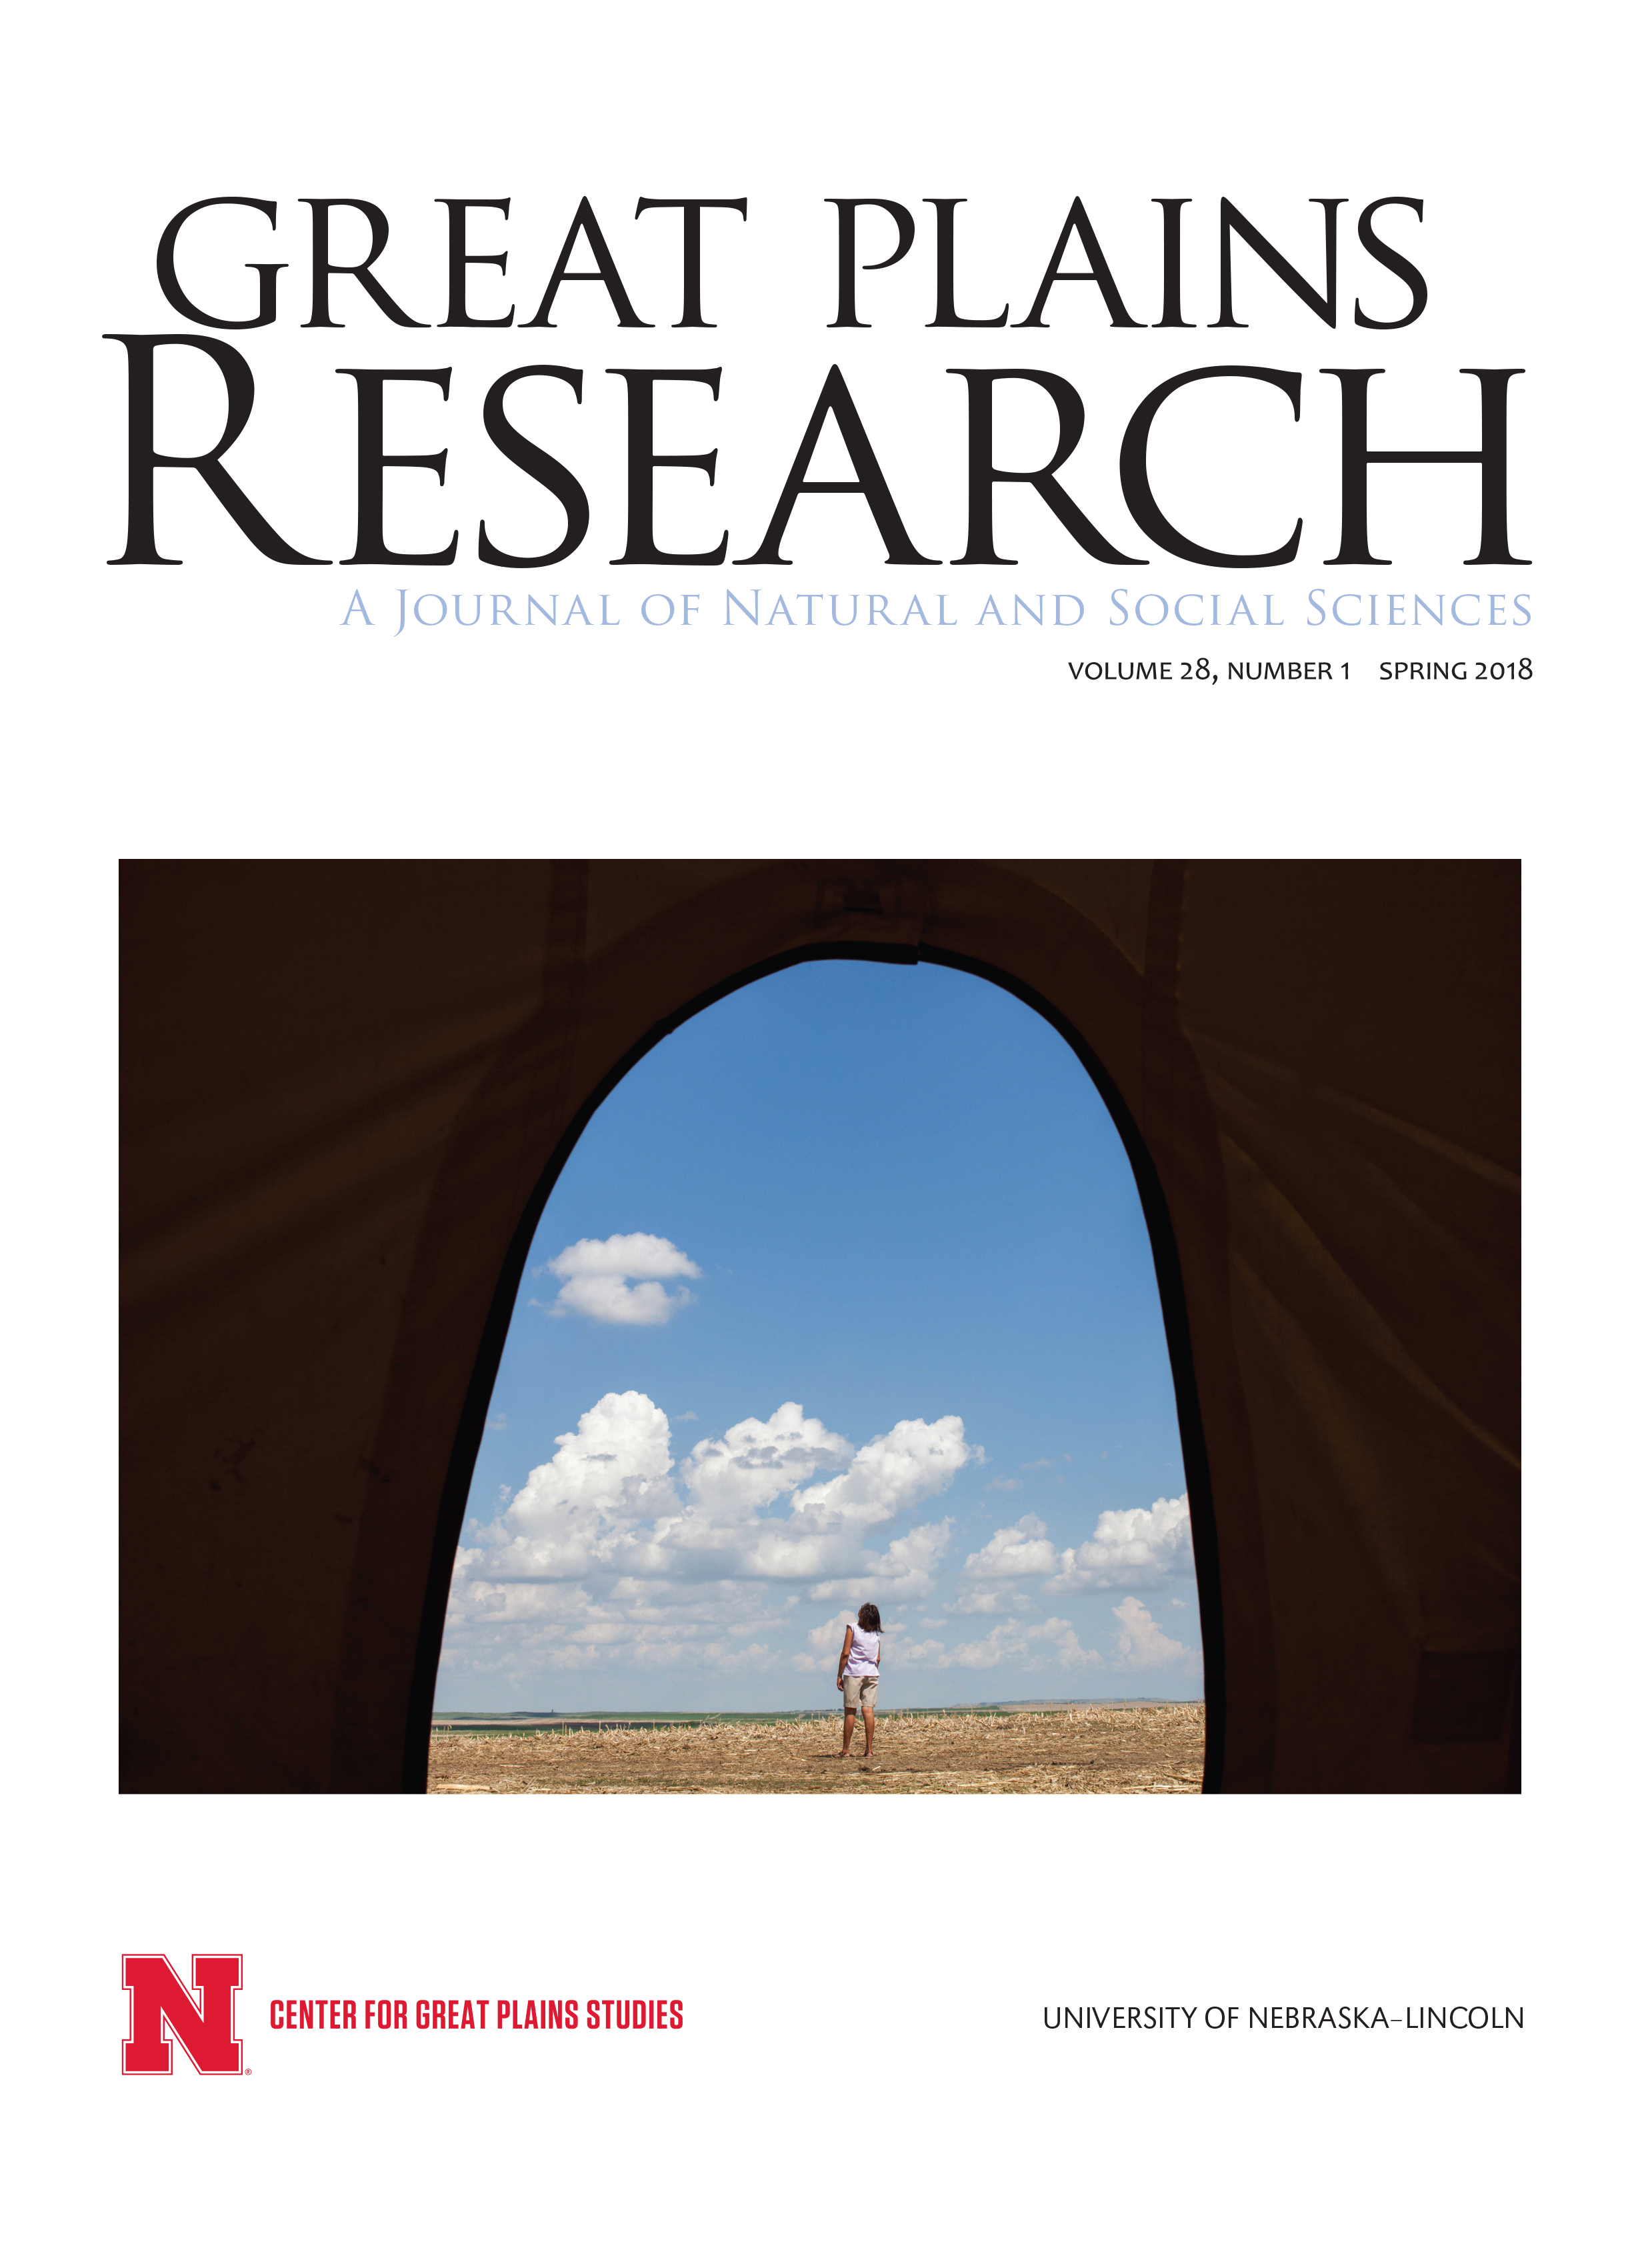 Current Issue of Great Plains Research